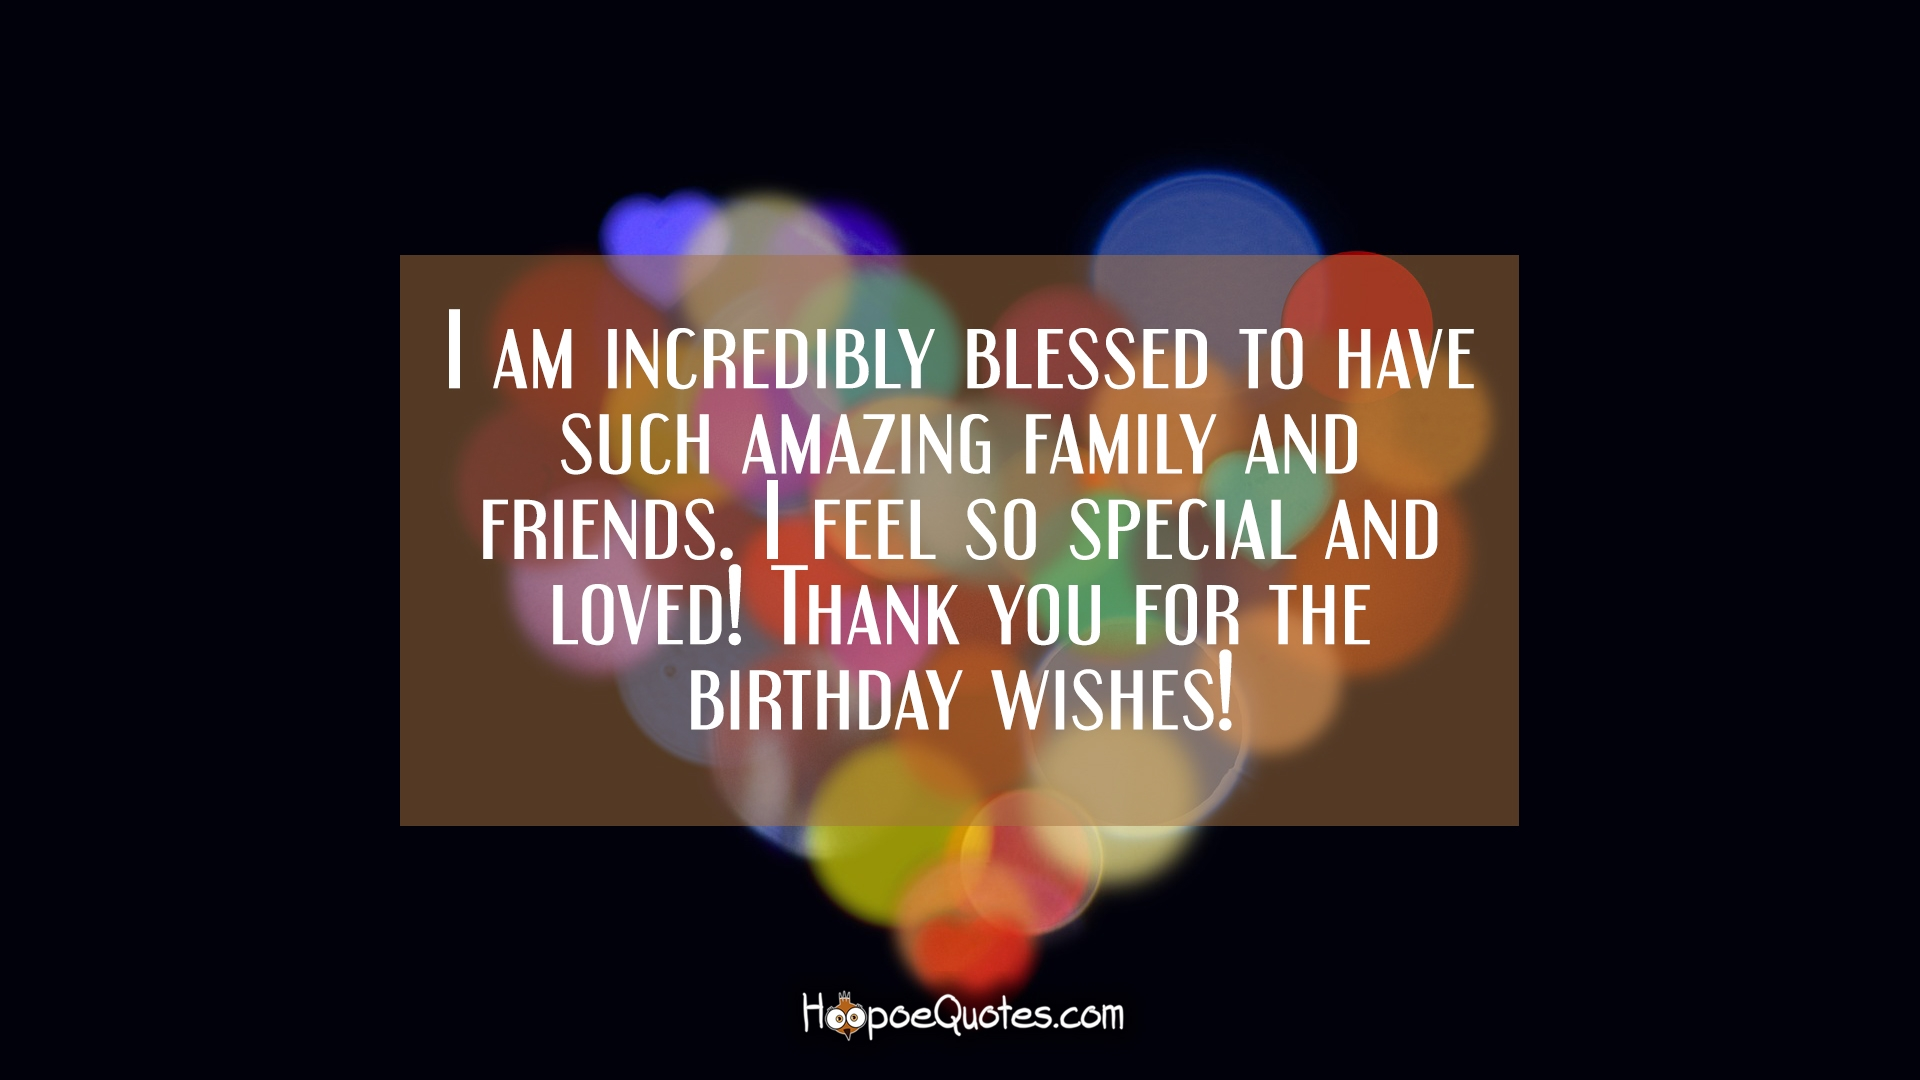 Corner I Am Incredibly Blessed To Have Such Family I Happy Birthday To Me Quotes Thanking God Happy Birthday To Me Quotes Facebook inspiration Happy Birthday To Me Quotes